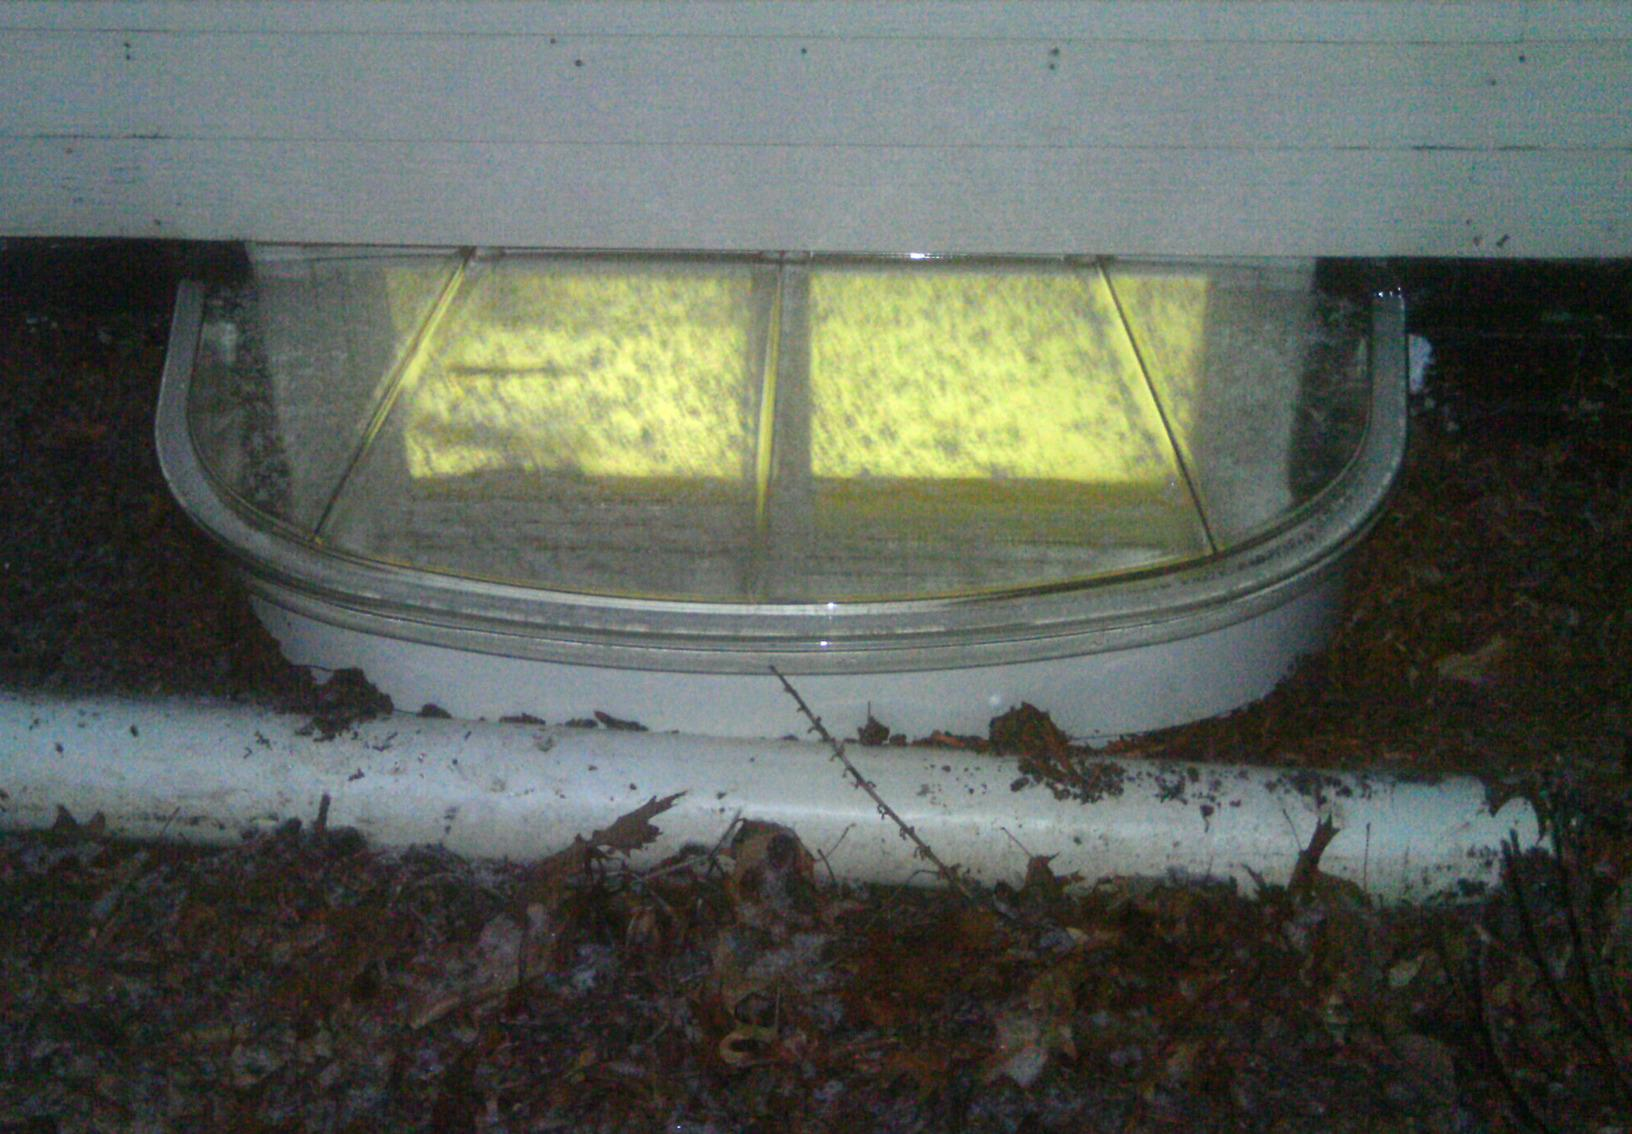 Covered window wells will help keep rain, snow, and debris out of your window wells.